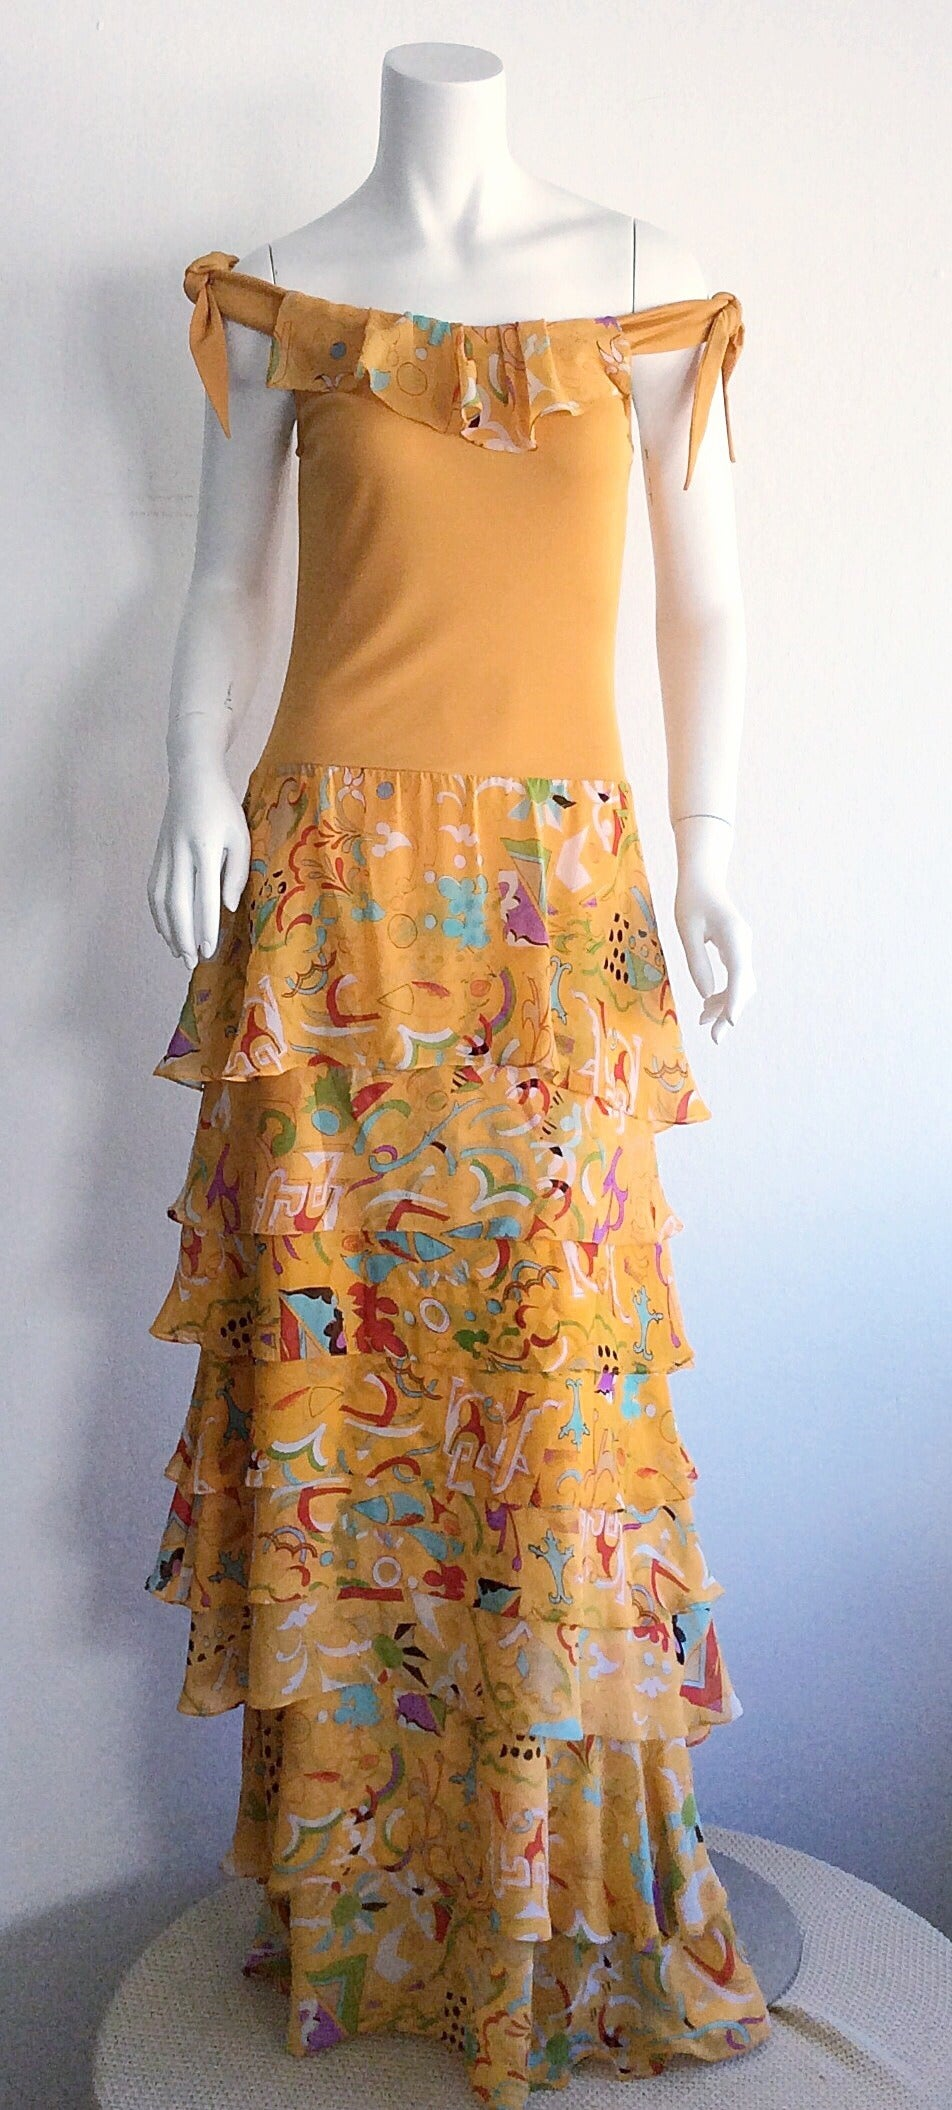 Incredible 1970s Stephen Burrows Jersey Maxi Dress Silk Tiered Skirt Brand New 7